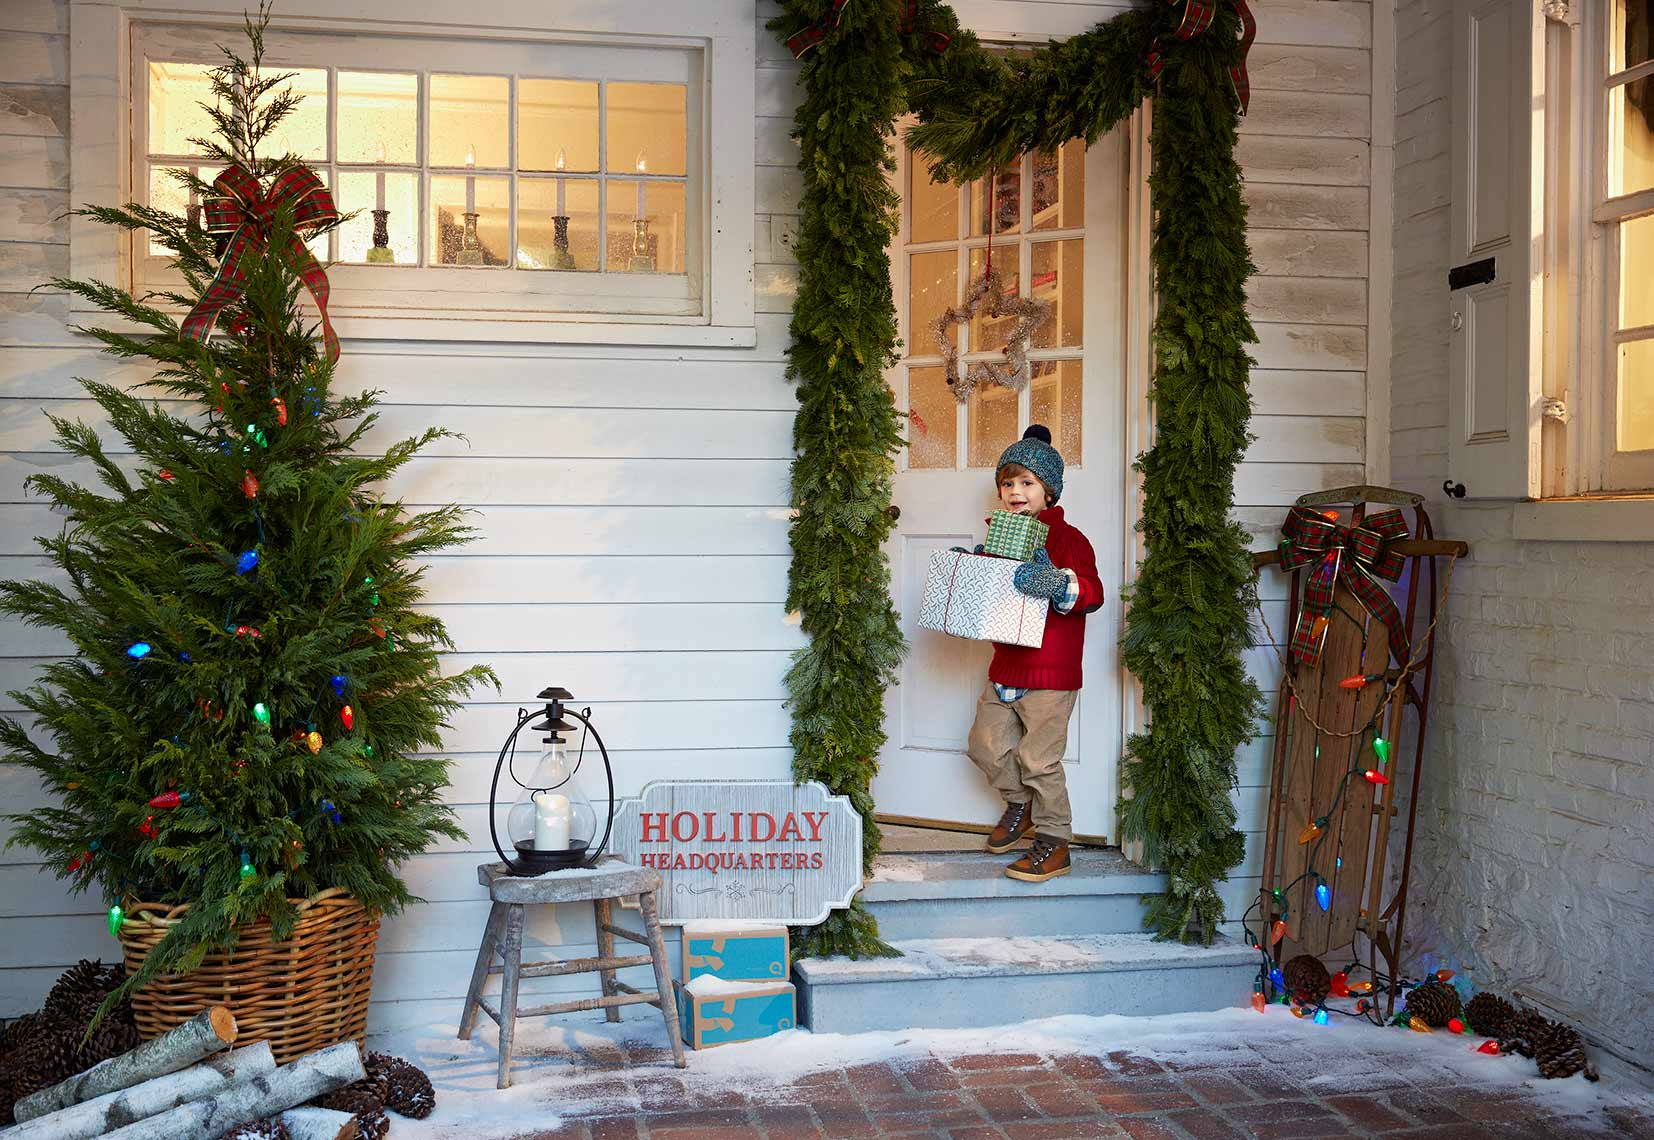 A young boy and his Christmas presents enters his house